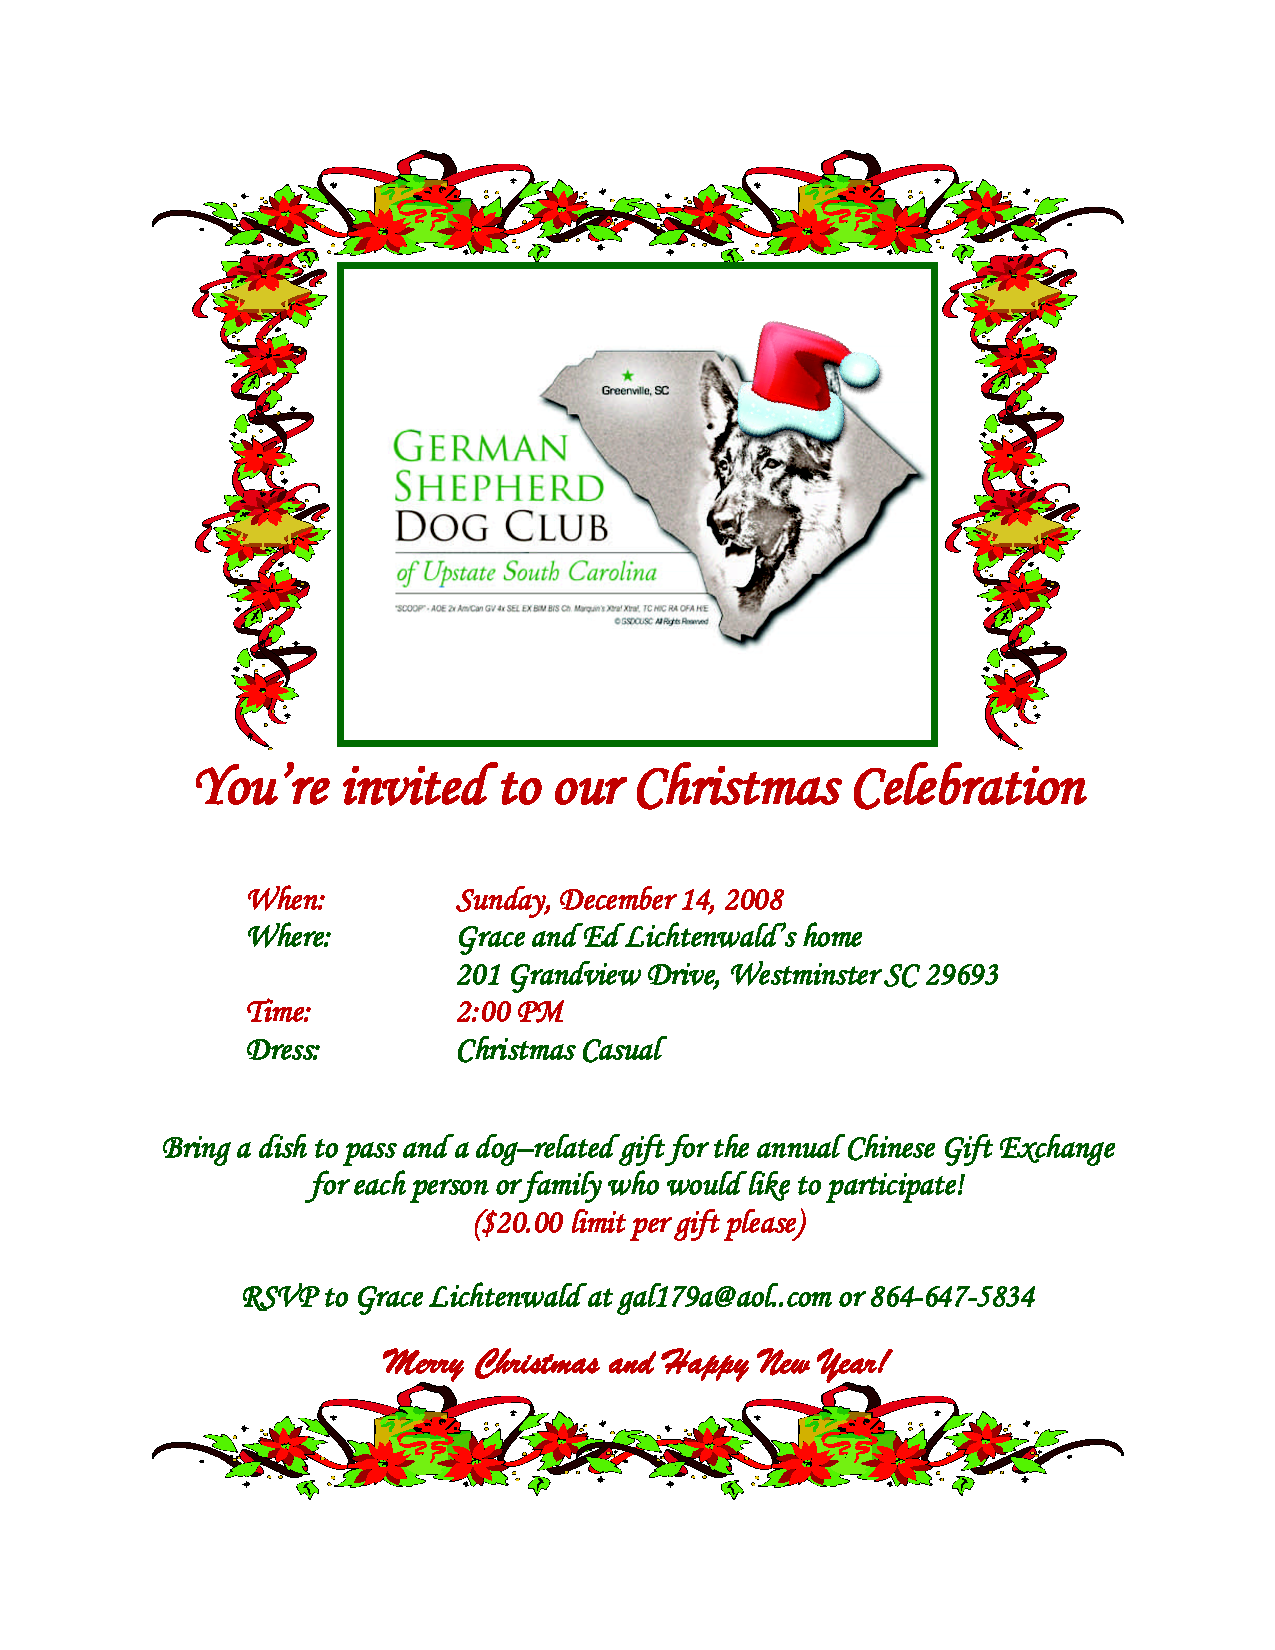 Invitation Letter For Christmas Event Gallery - Invitation Sample ...